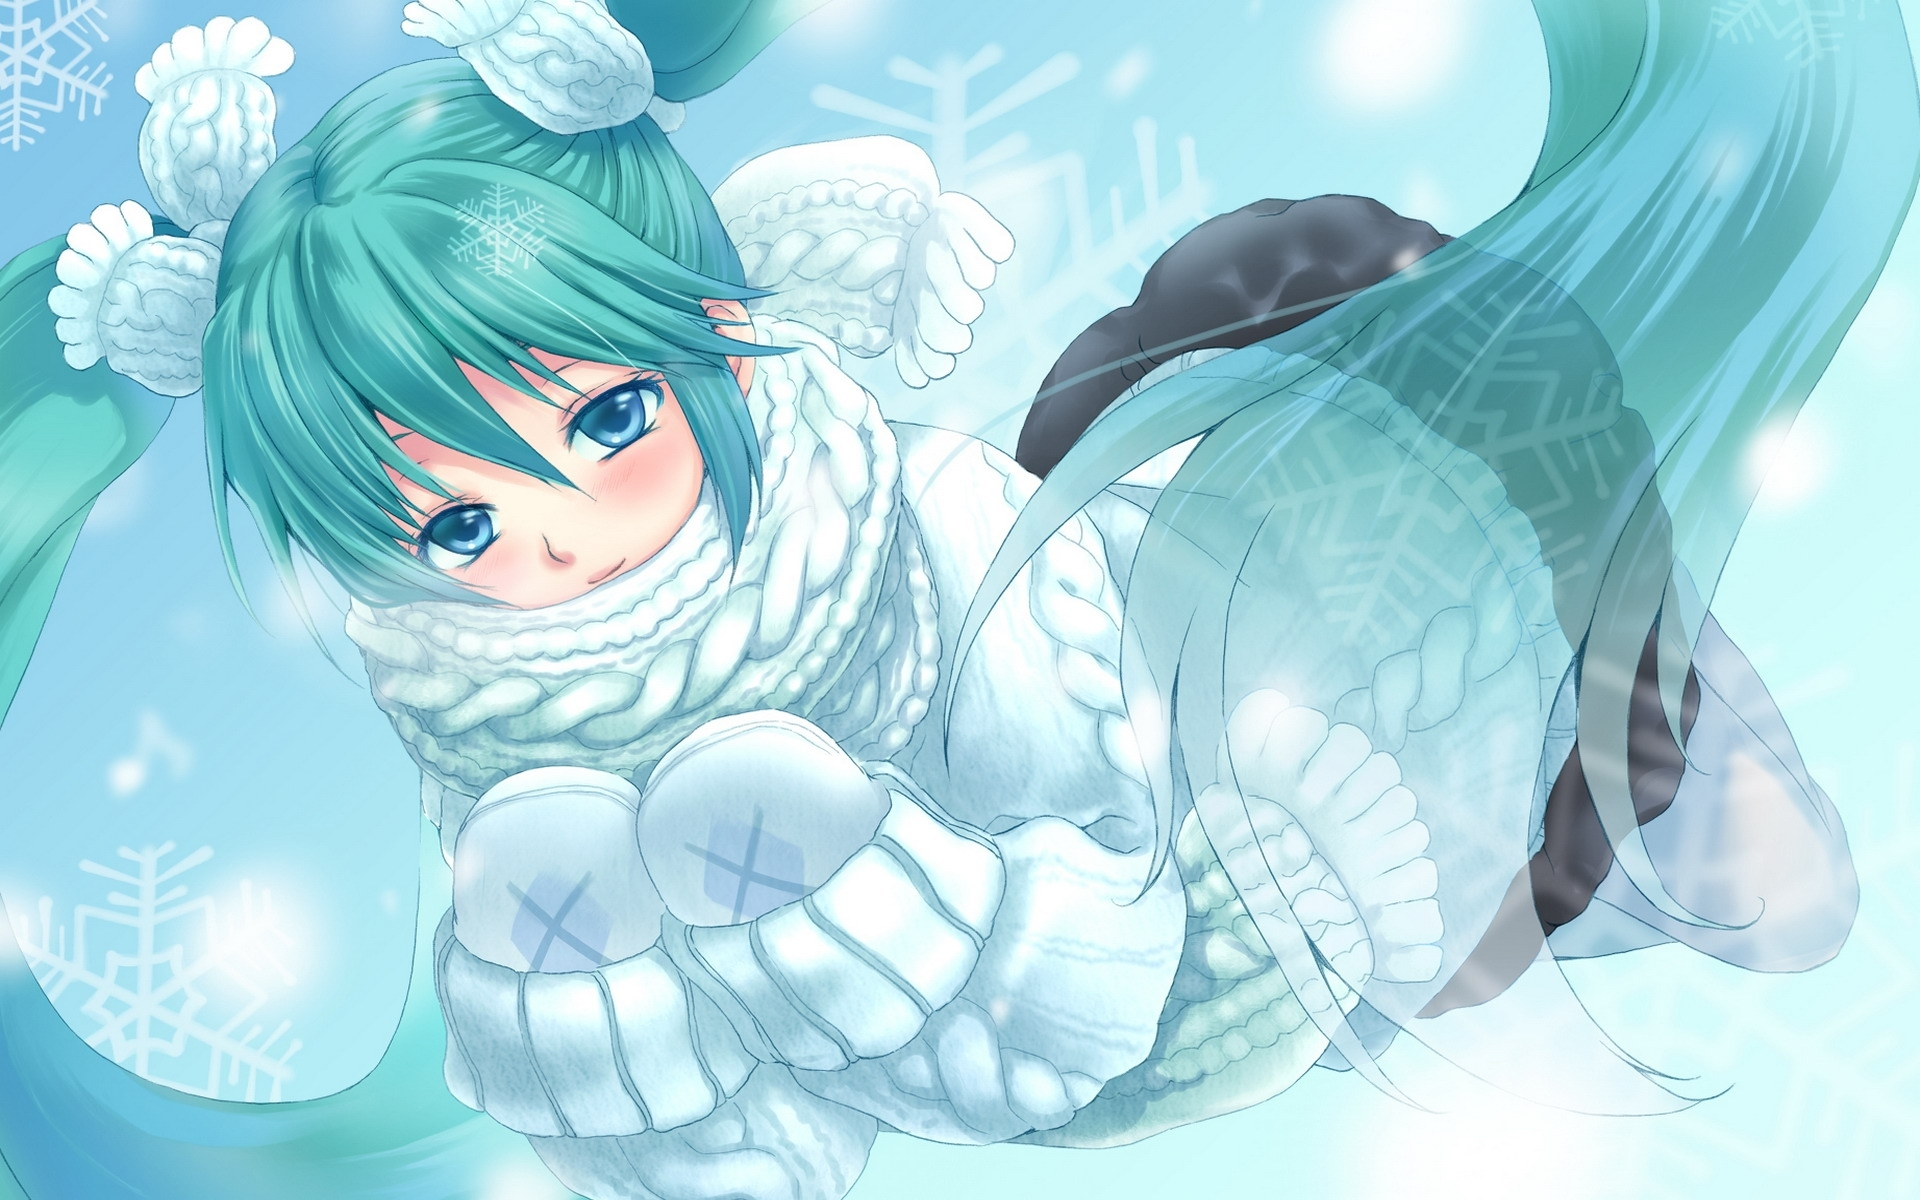 41016 free download Turquoise wallpapers for phone, Anime, Girls Turquoise images and screensavers for mobile